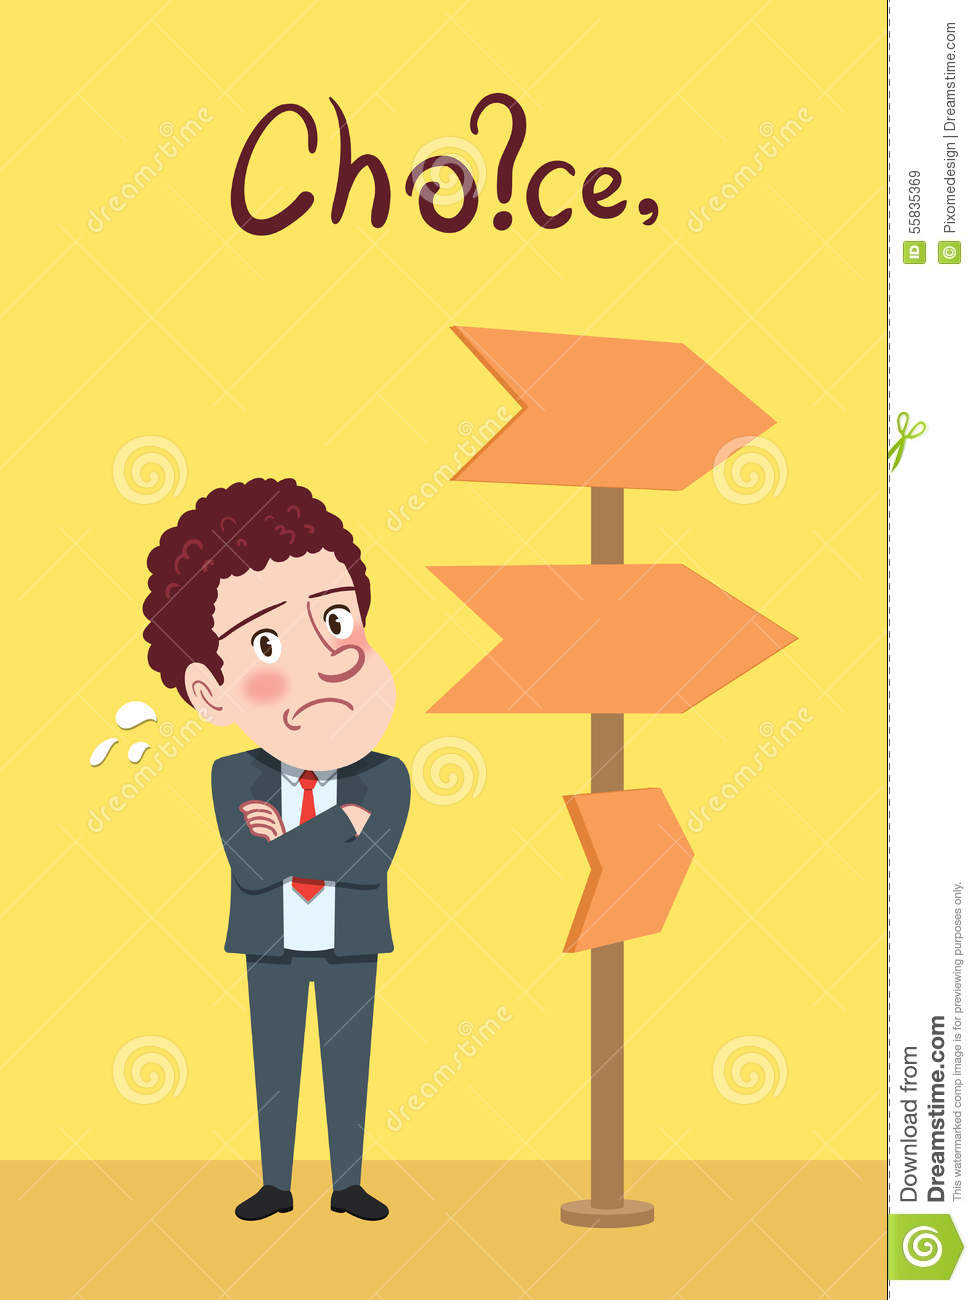 Drawing flat character design choice concept stock for Designers choice